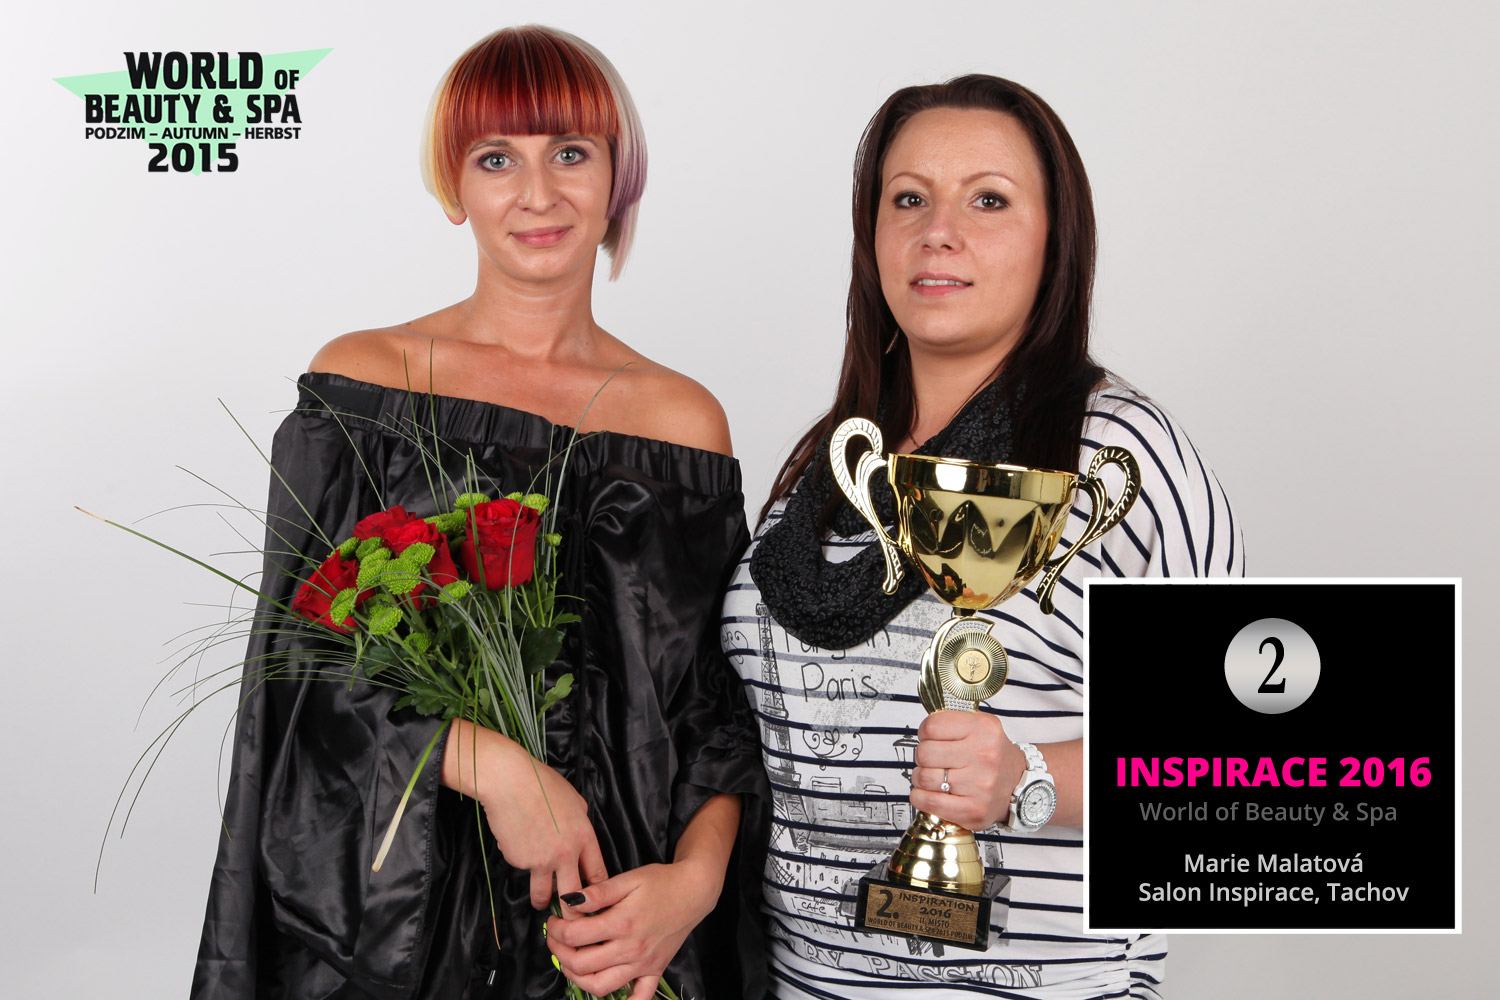 World of Beauty & Spa – Inspirace 2016: 2. místo Marie Malatová, Salon Inspirace, Tachov